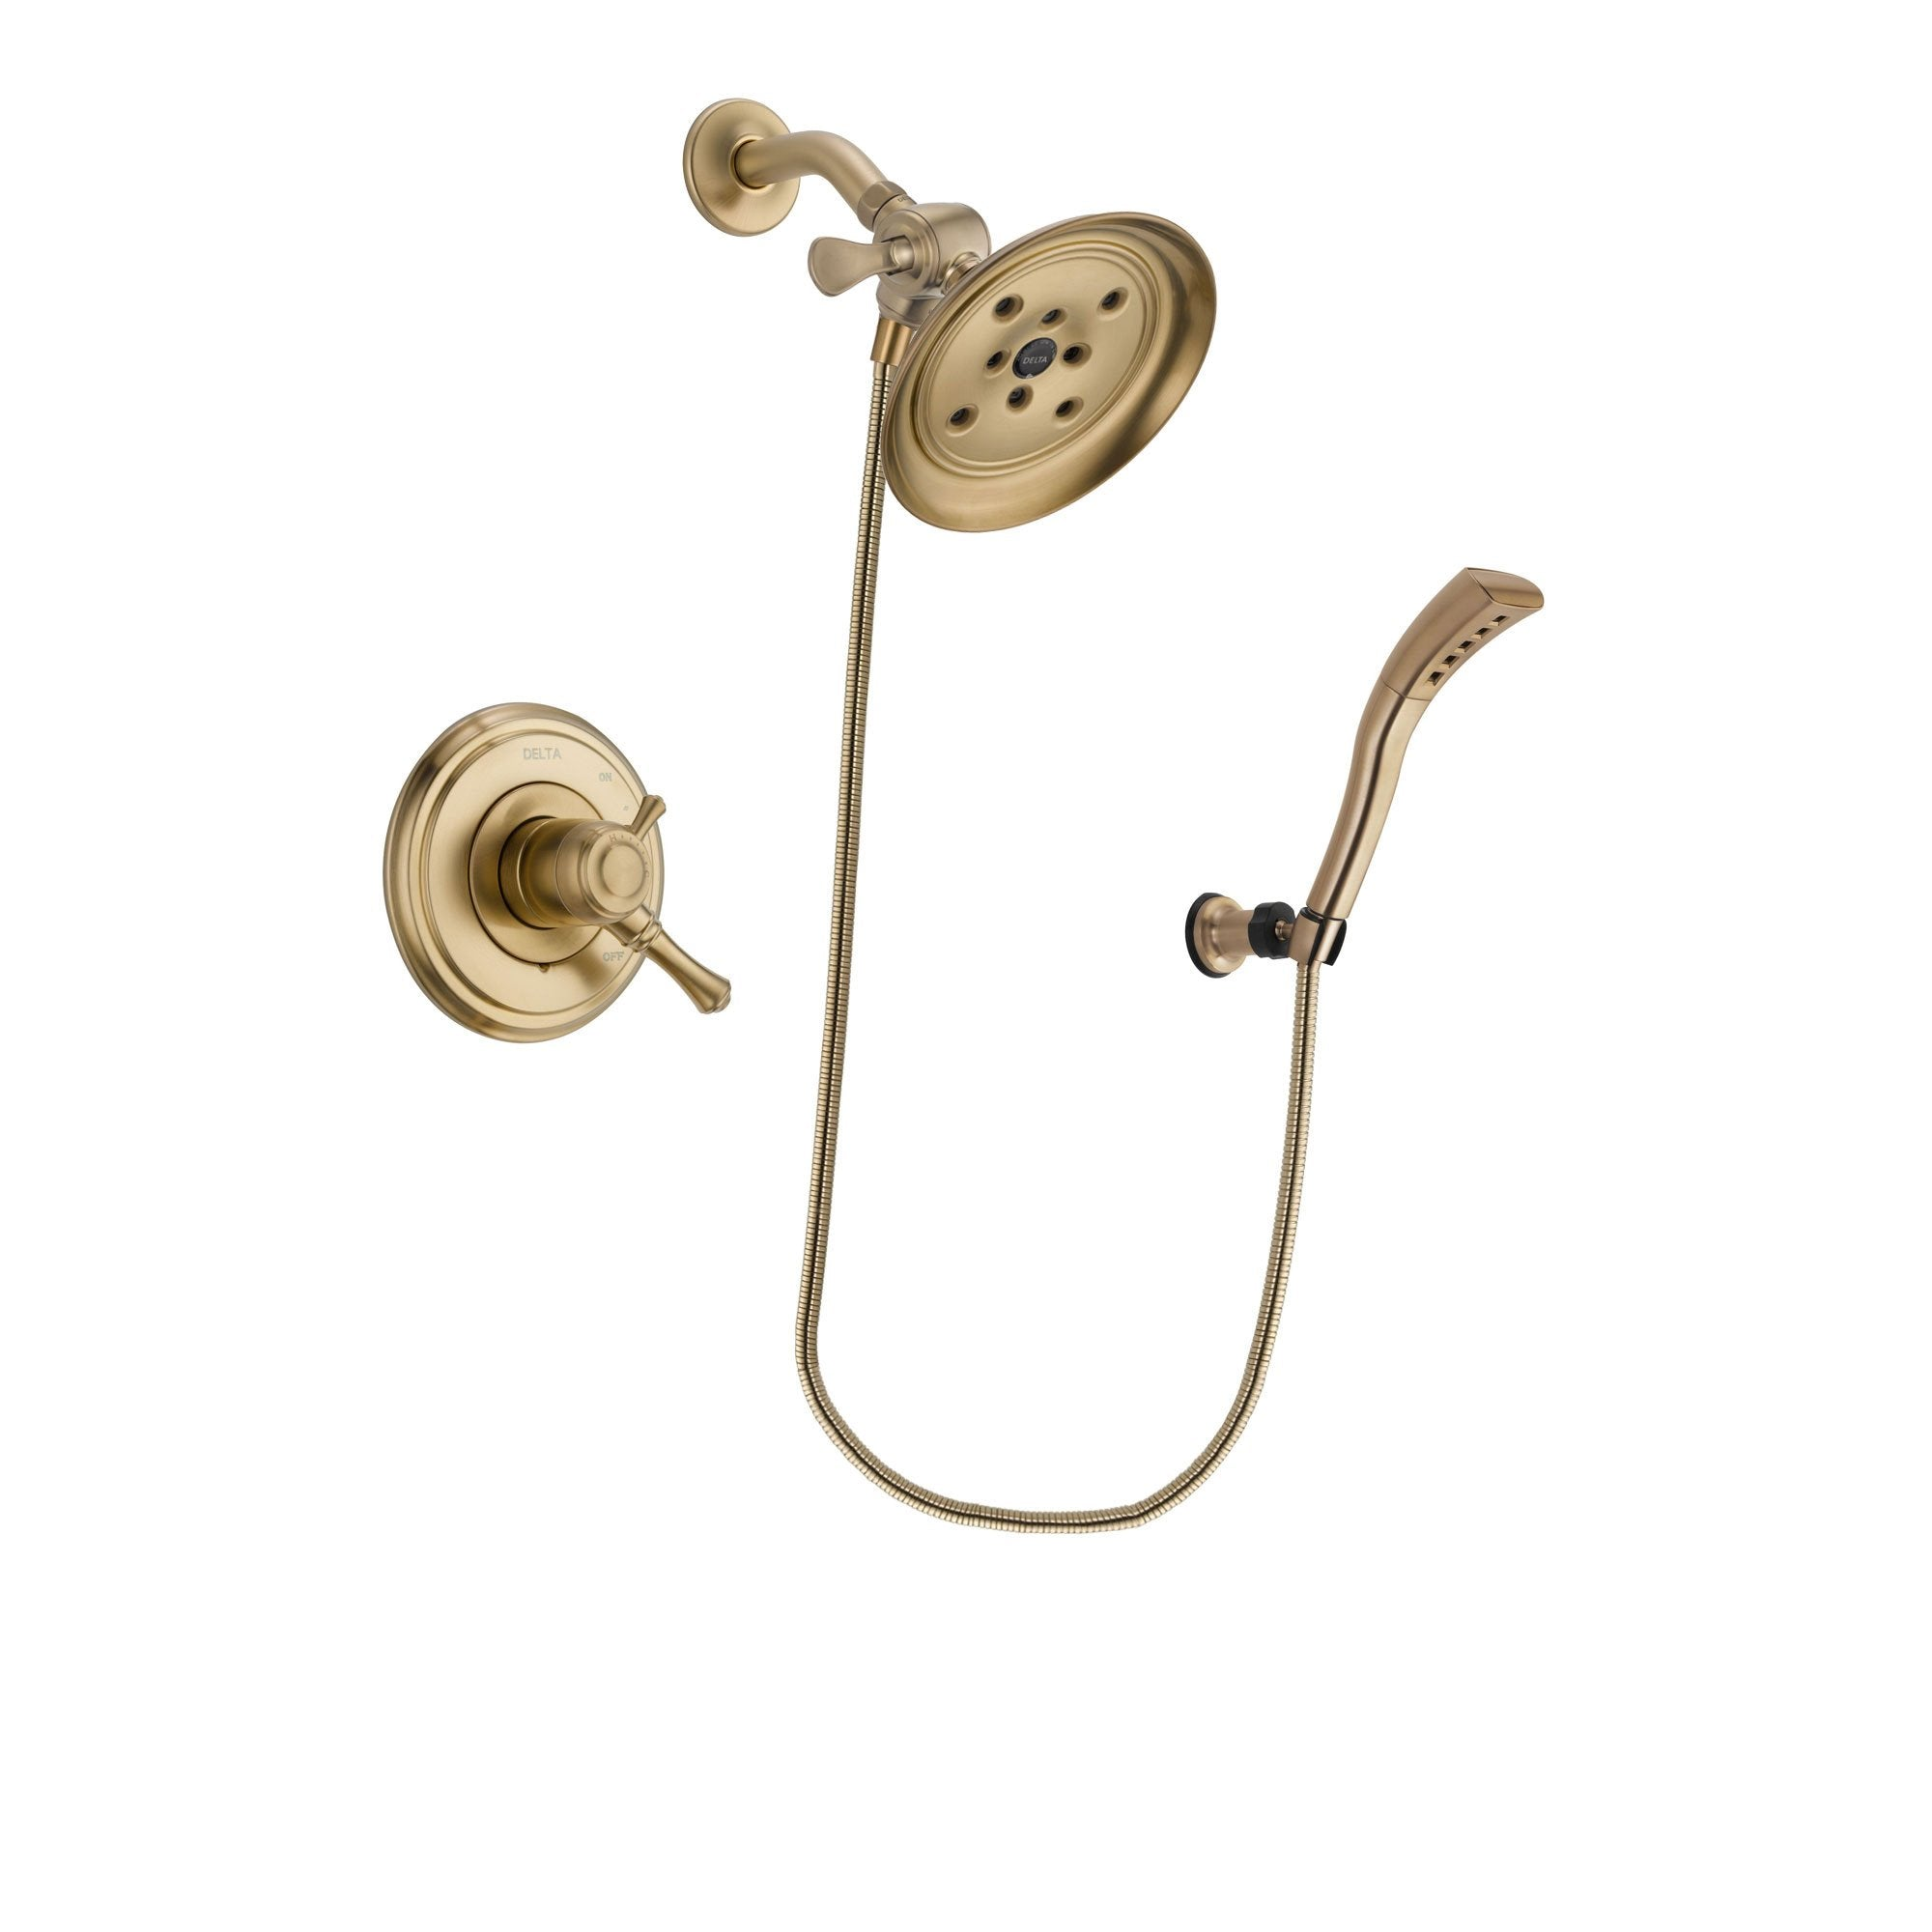 Delta Cassidy Champagne Bronze Finish Dual Control Shower Faucet System Package with Large Rain Shower Head and Modern Wall Mount Personal Handheld Shower Spray Includes Rough-in Valve DSP3706V